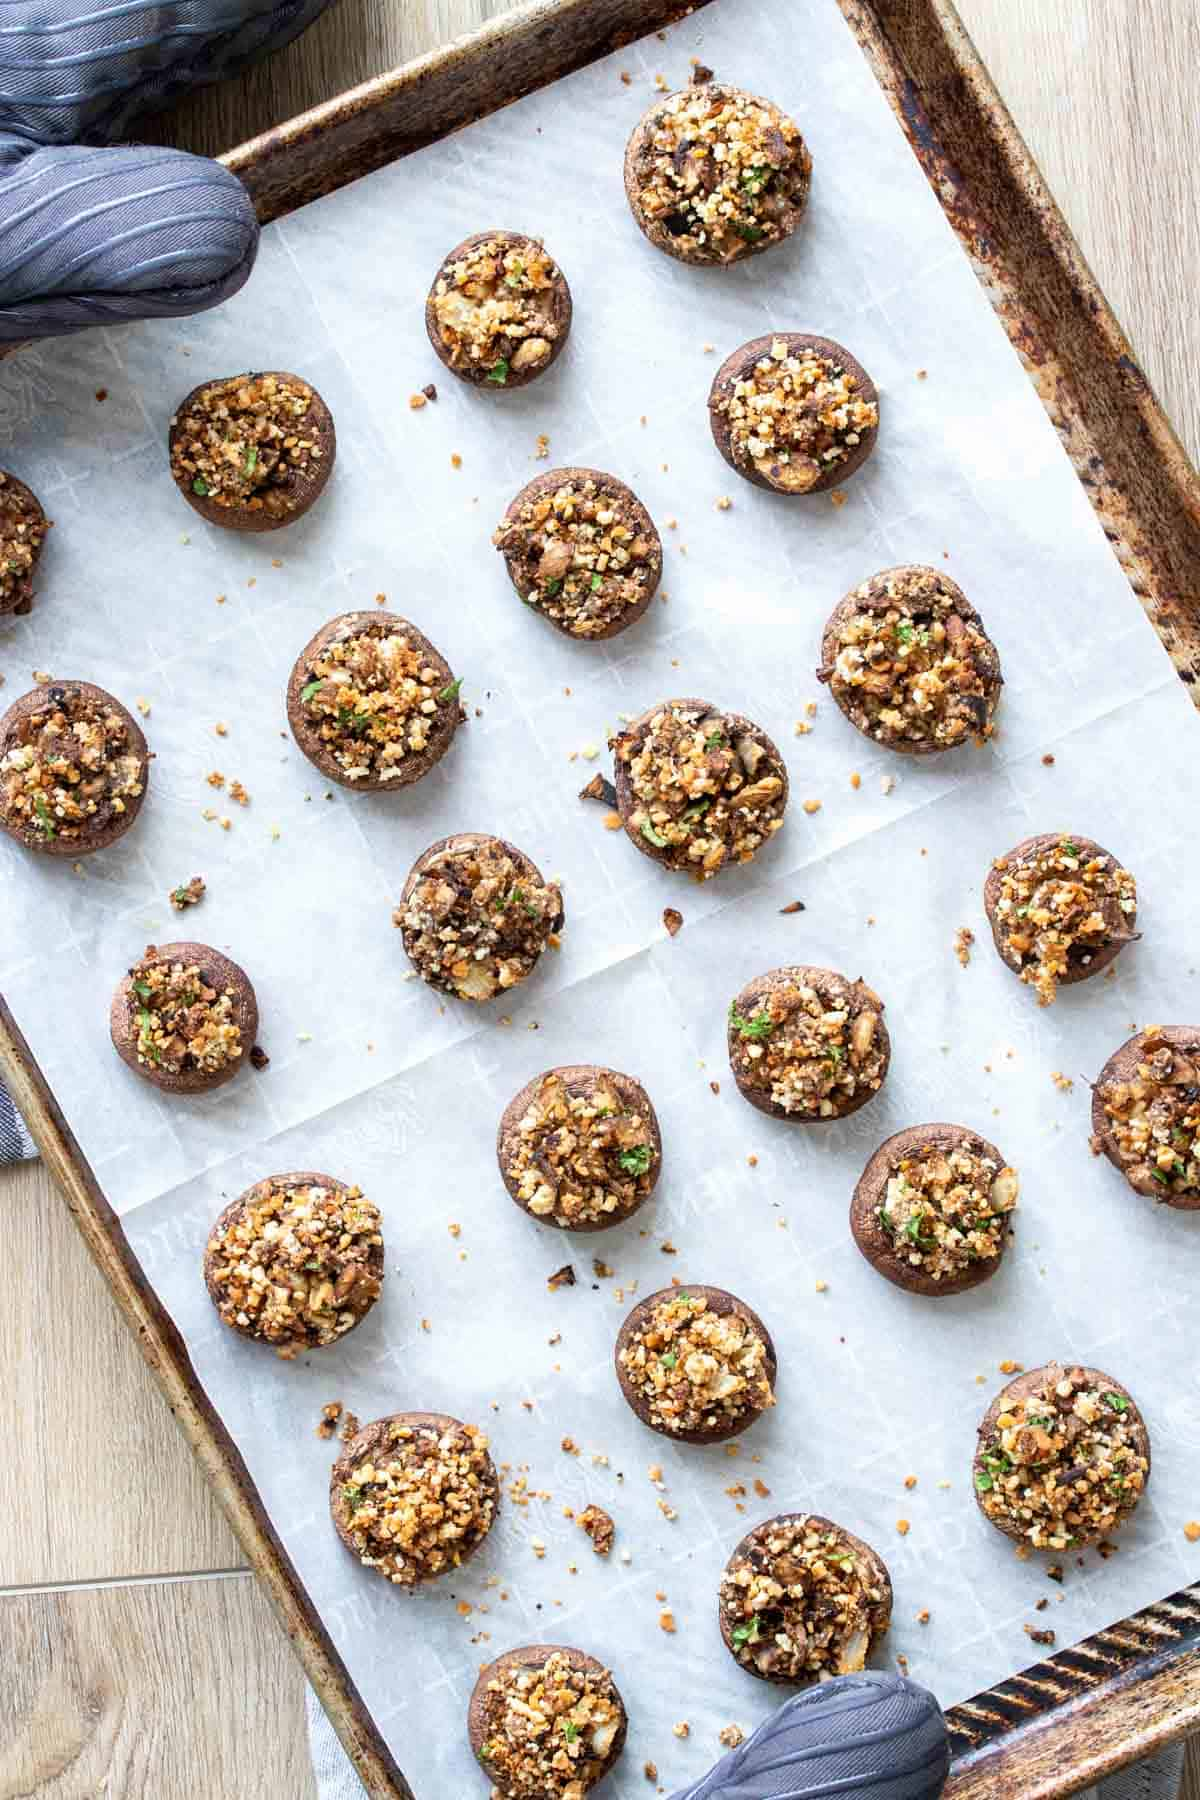 Top view of a parchment lined baking sheet filled with baked stuffed appetizer mushrooms